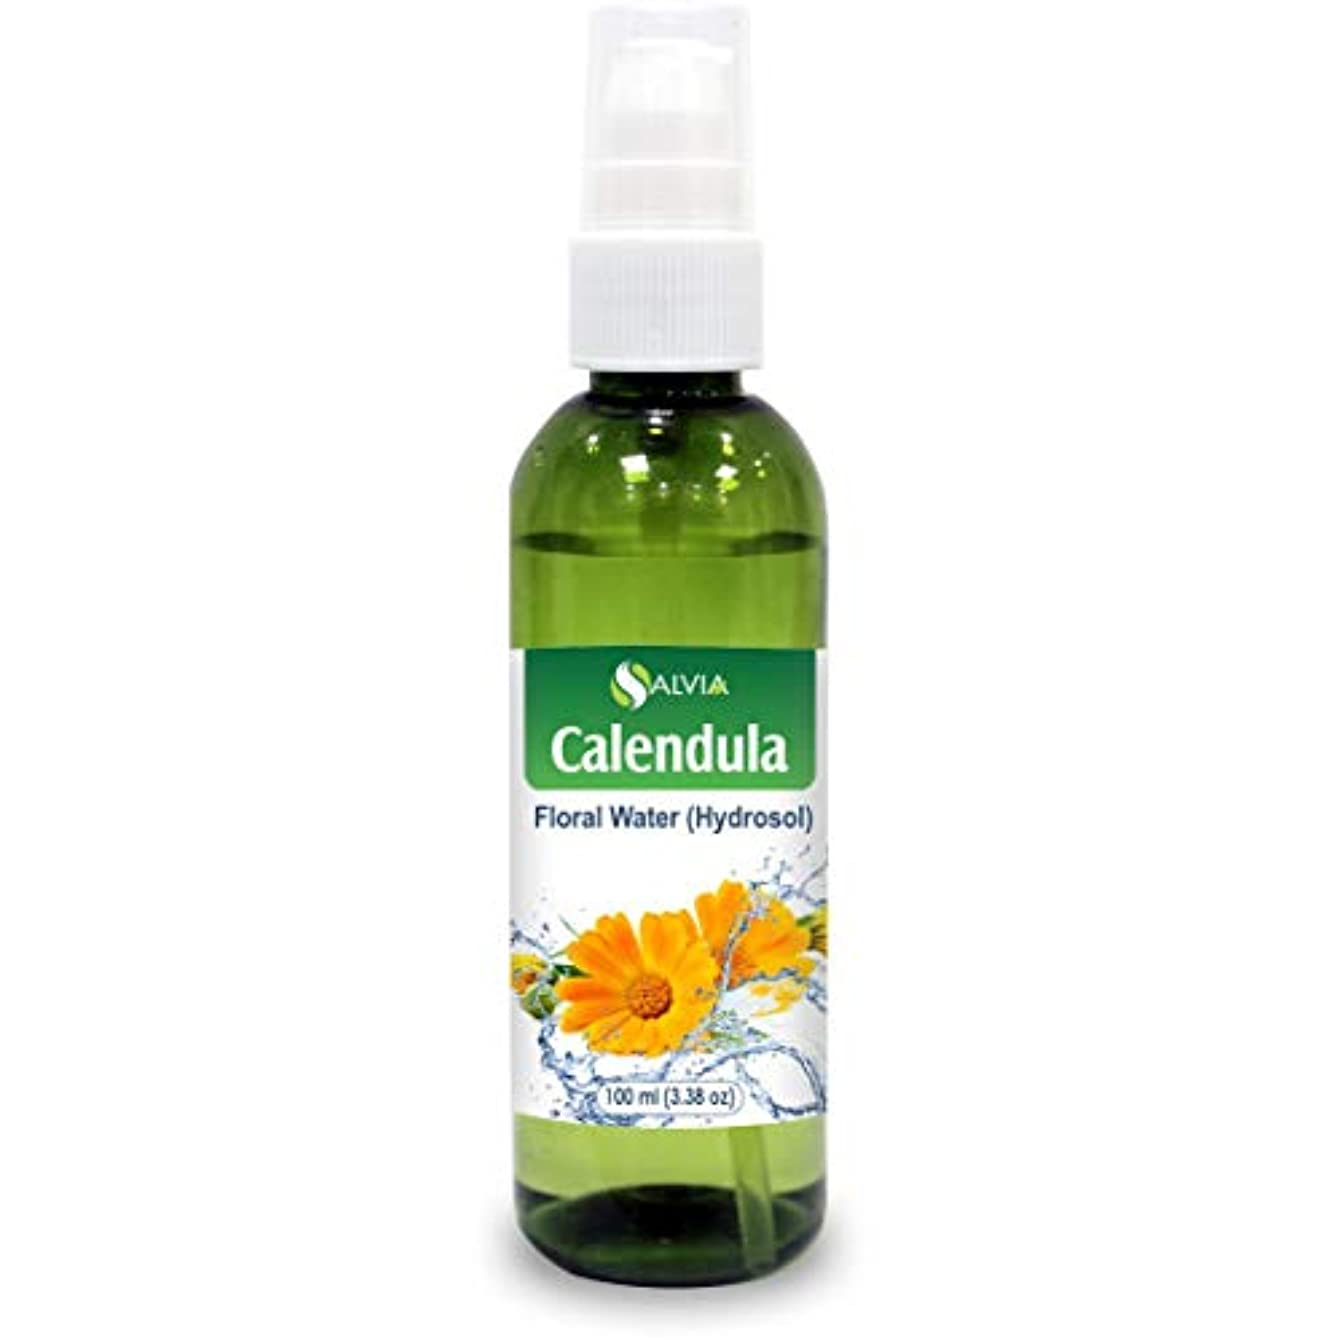 壊れた研究所数学的なCalendula Floral Floral Water 100ml (Hydrosol) 100% Pure And Natural